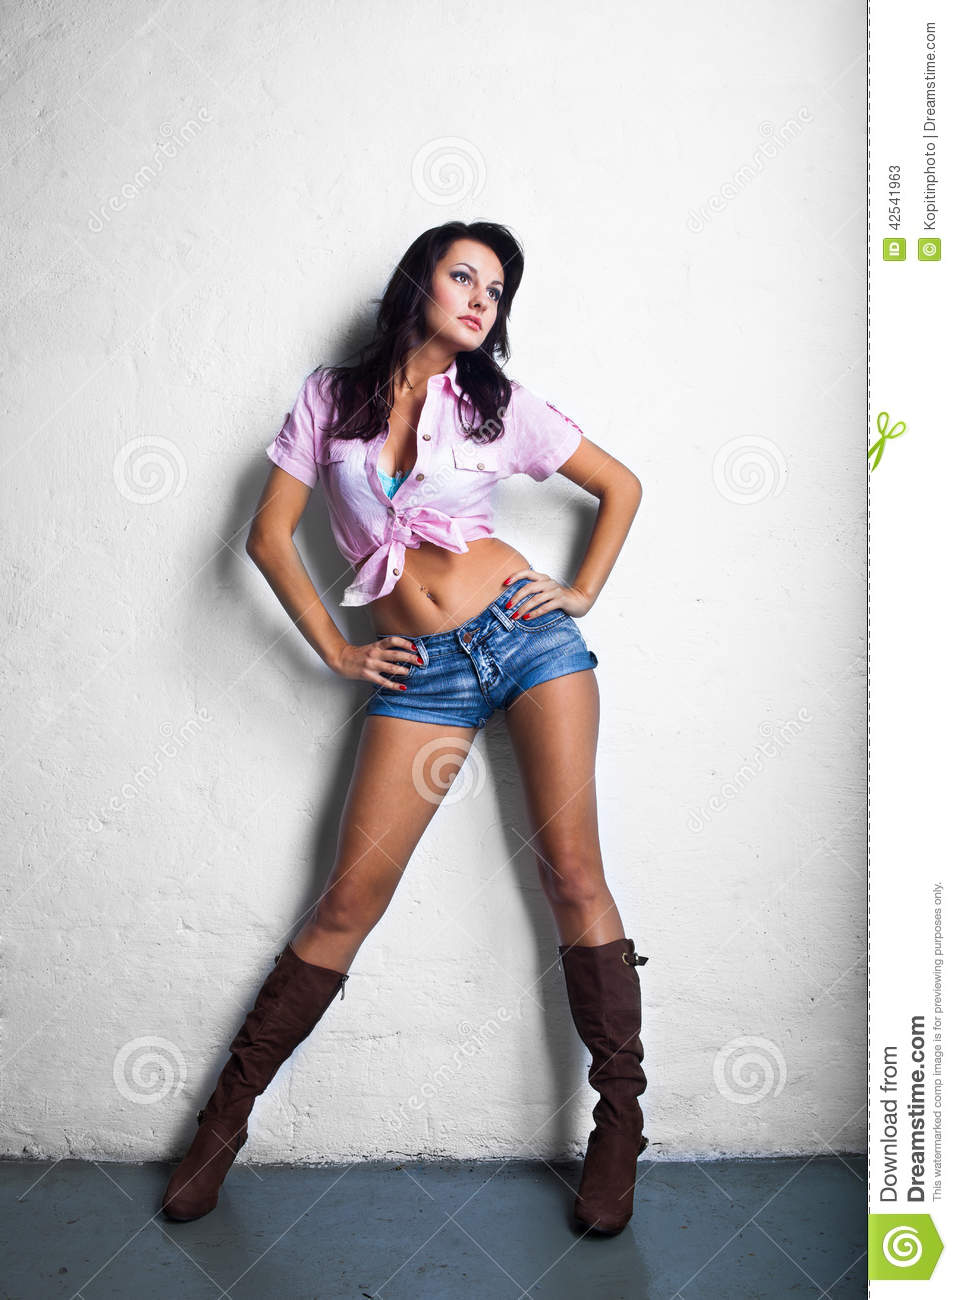 Cowgirl Girl In Shorts Stock Photo - Image: 42541963